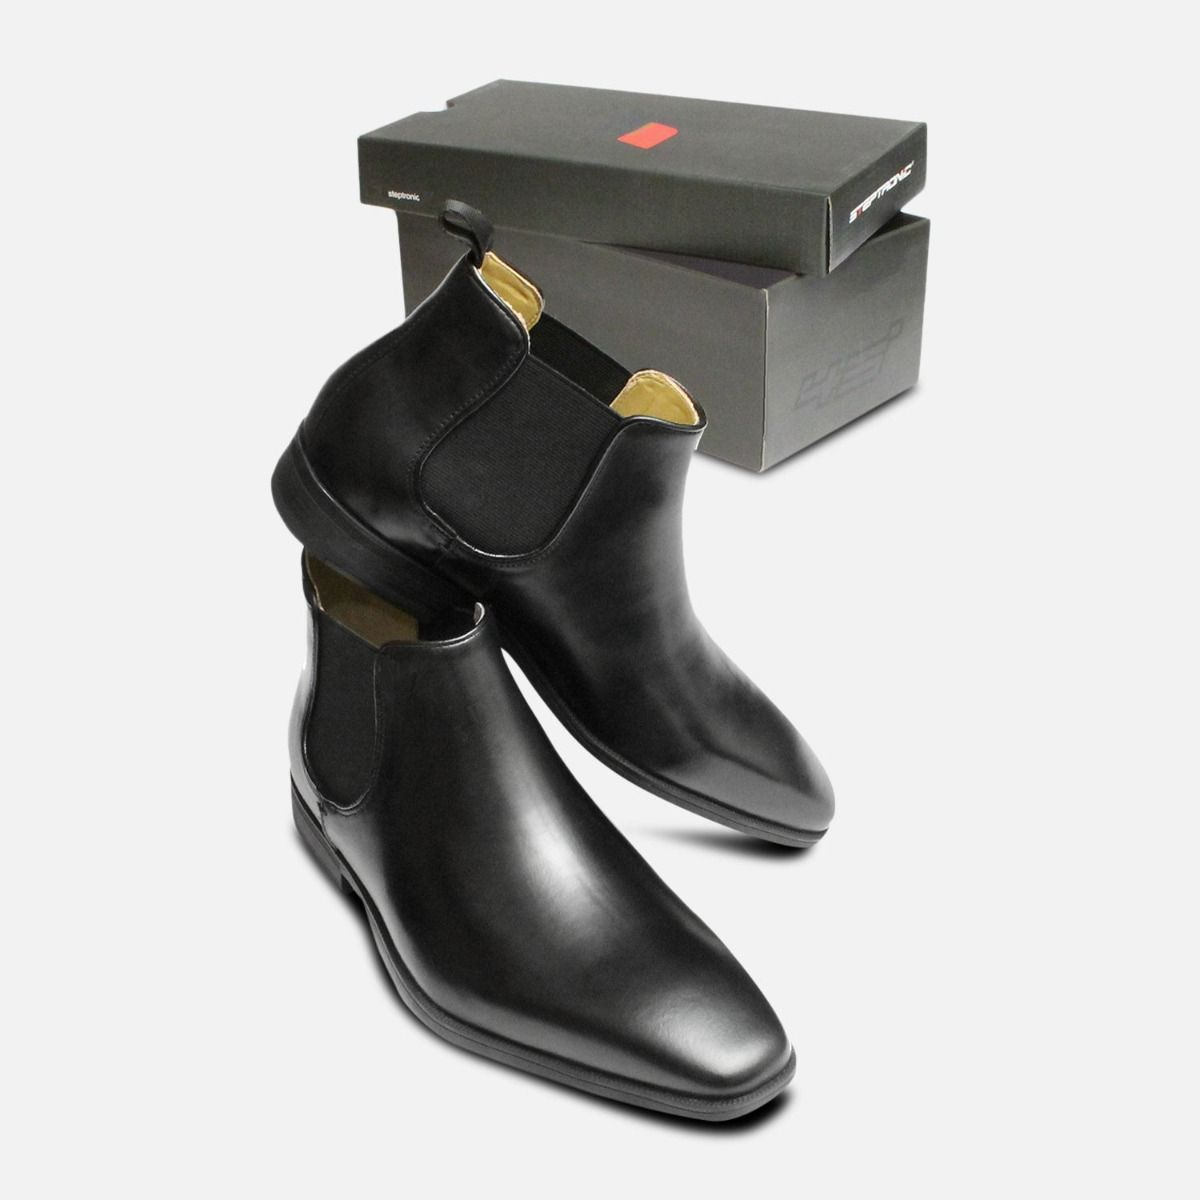 Chisel Toe Chelsea Boots Steptronic Hogan in Black